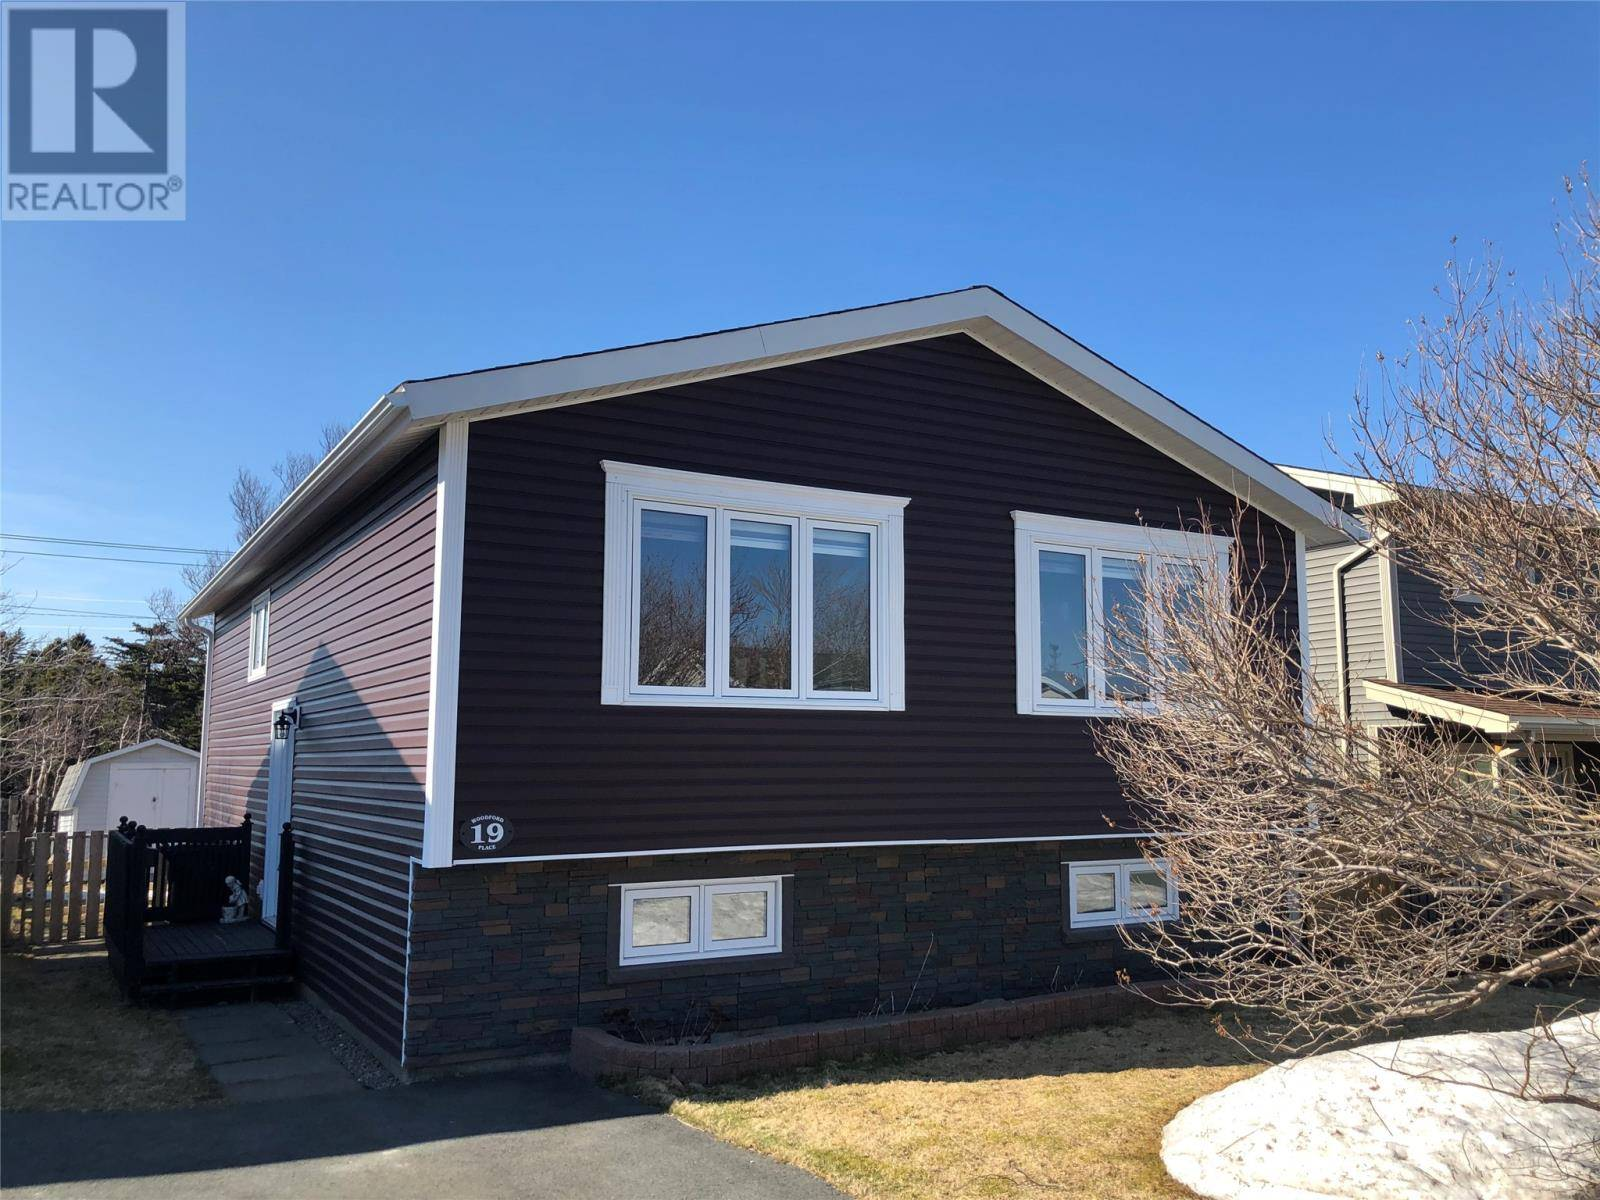 House for sale at 19 Woodford Pl Mount Pearl Newfoundland - MLS: 1210027